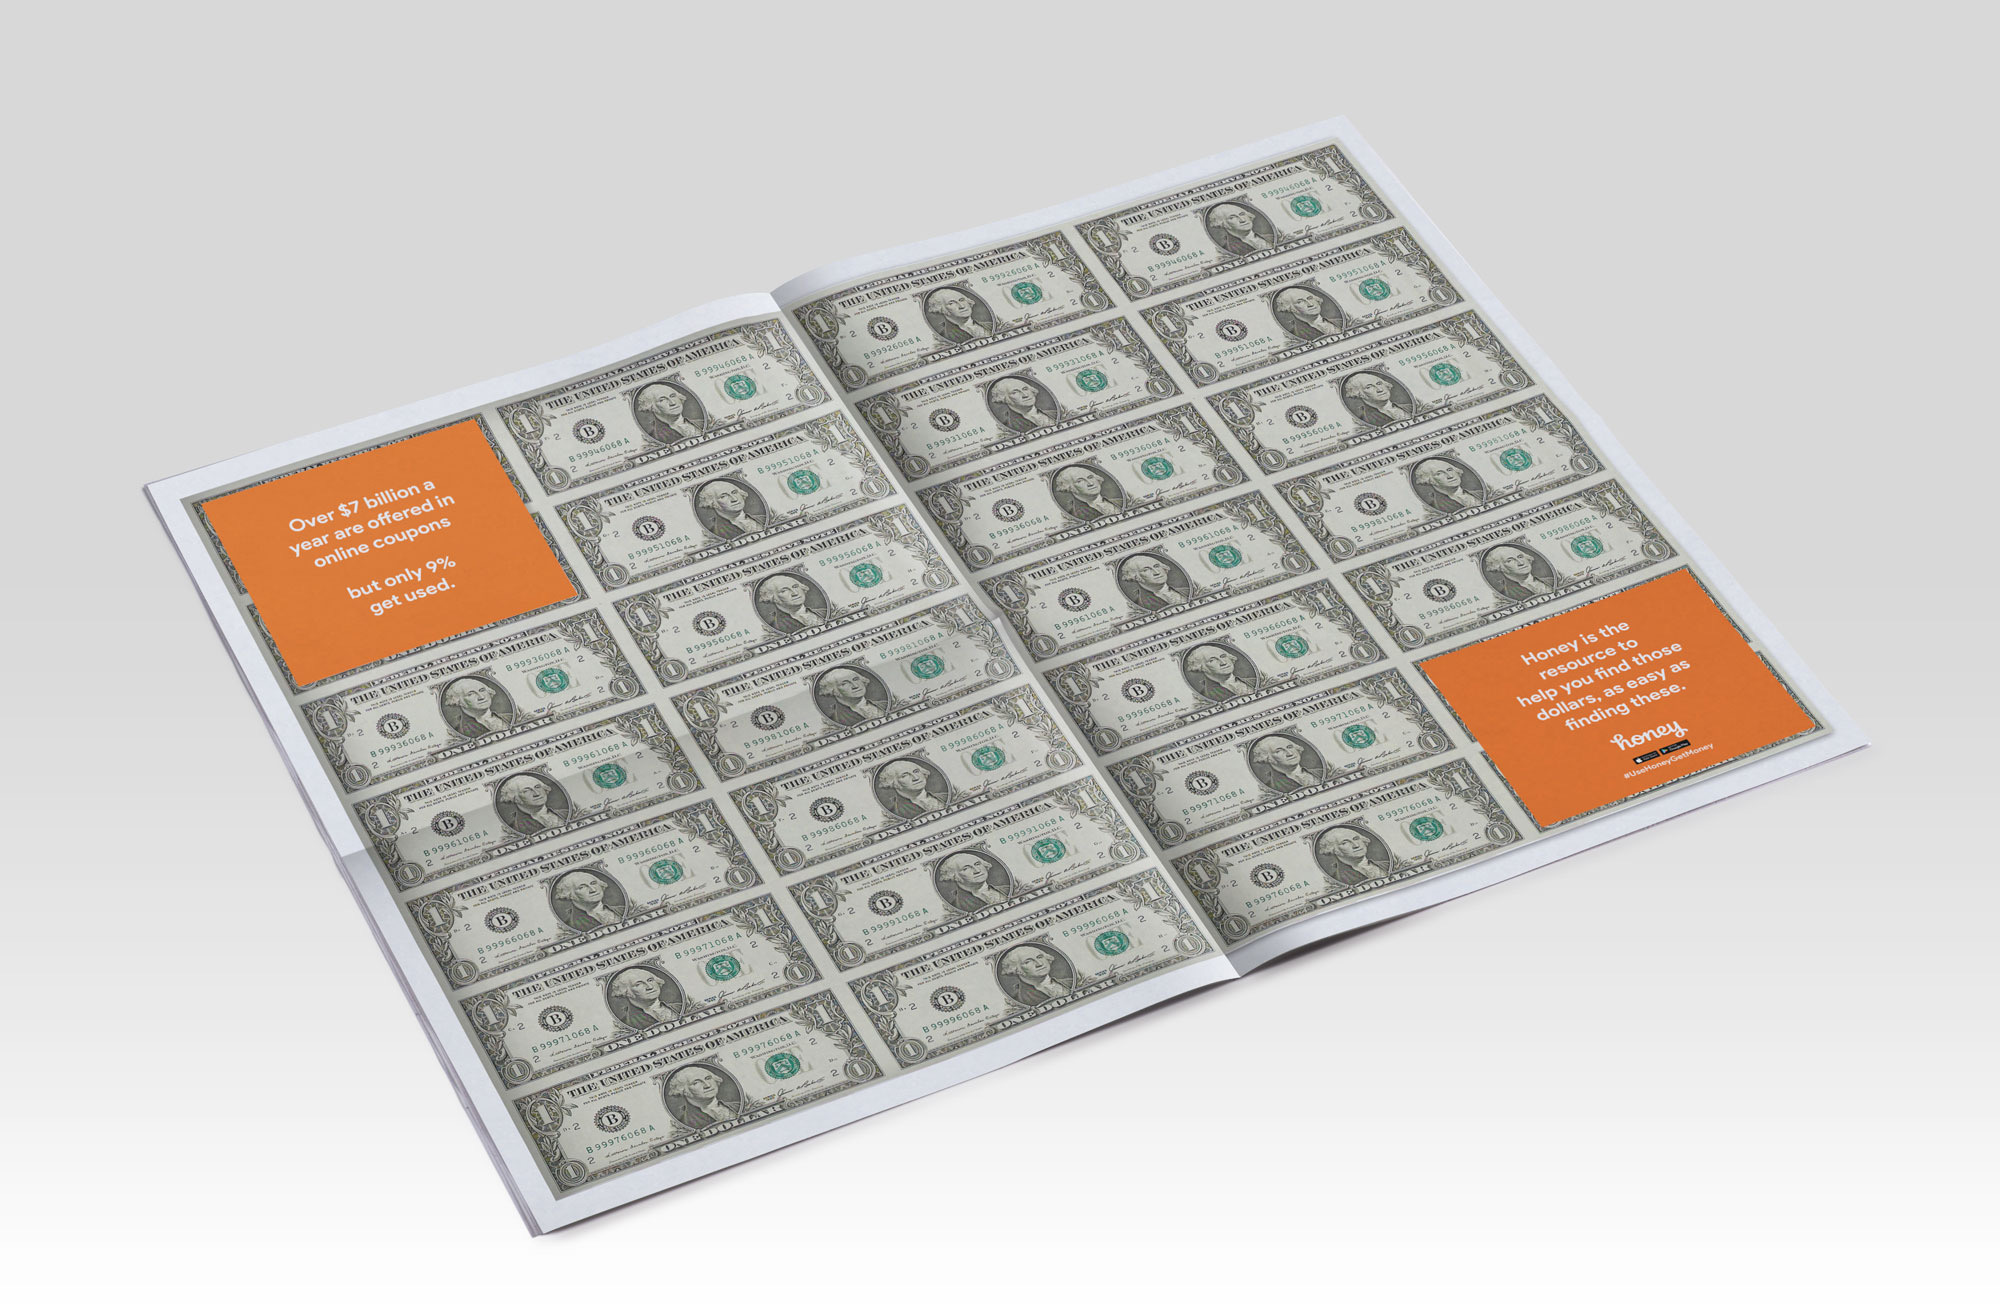 Randomly distributed copies of the paper will feature a center spread filled with real cash.